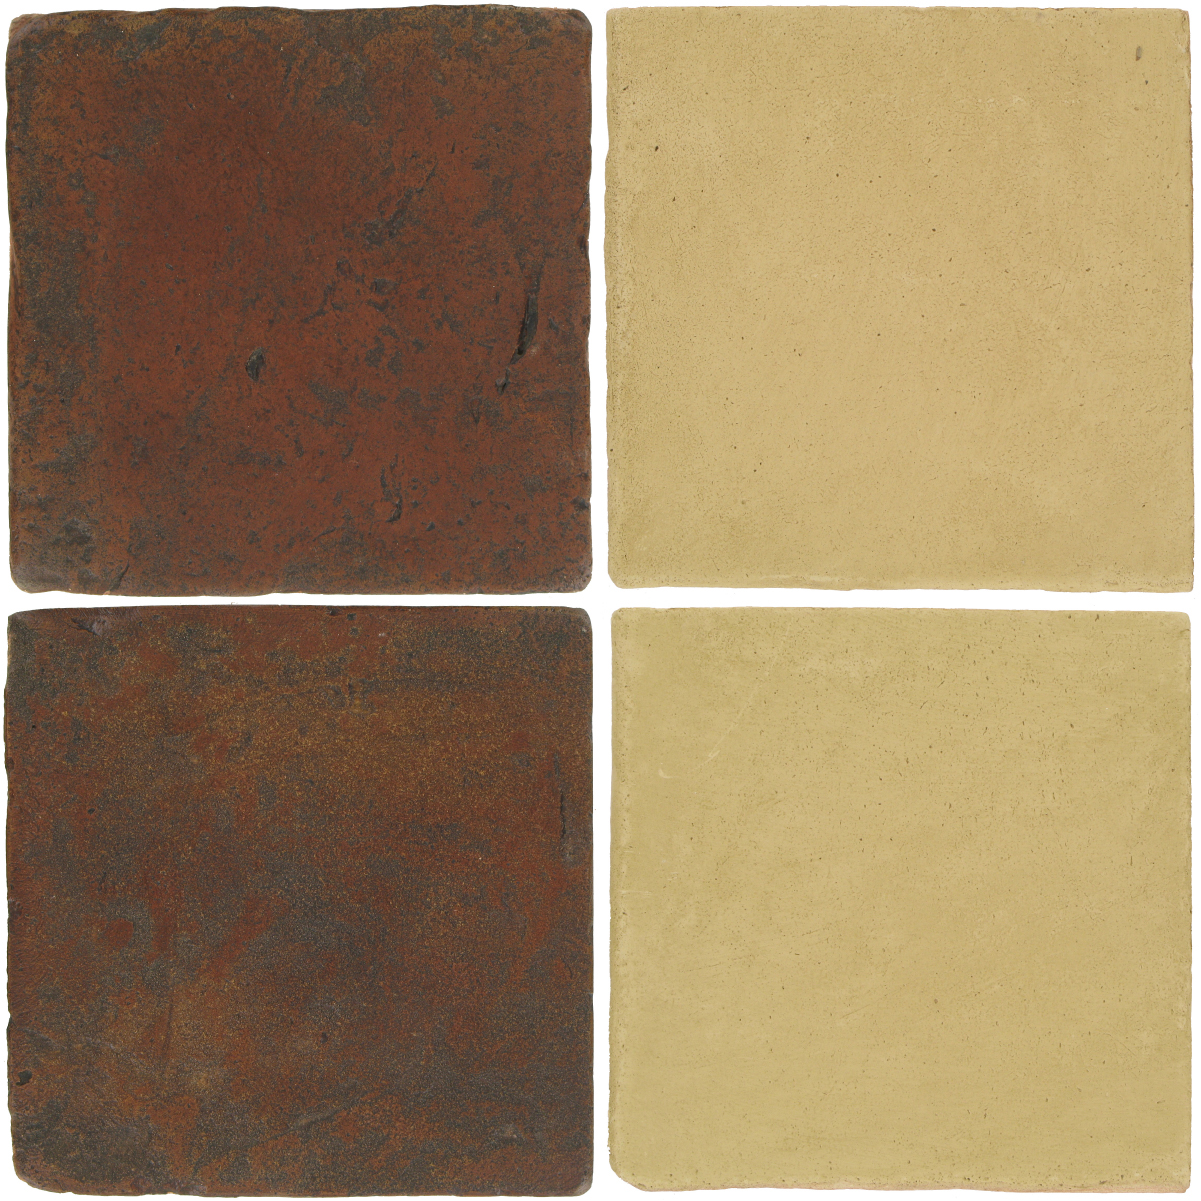 Pedralbes Antique Terracotta  2 Color Combinations  VTG-PSOW Old World + OHS-PGGW Golden W.